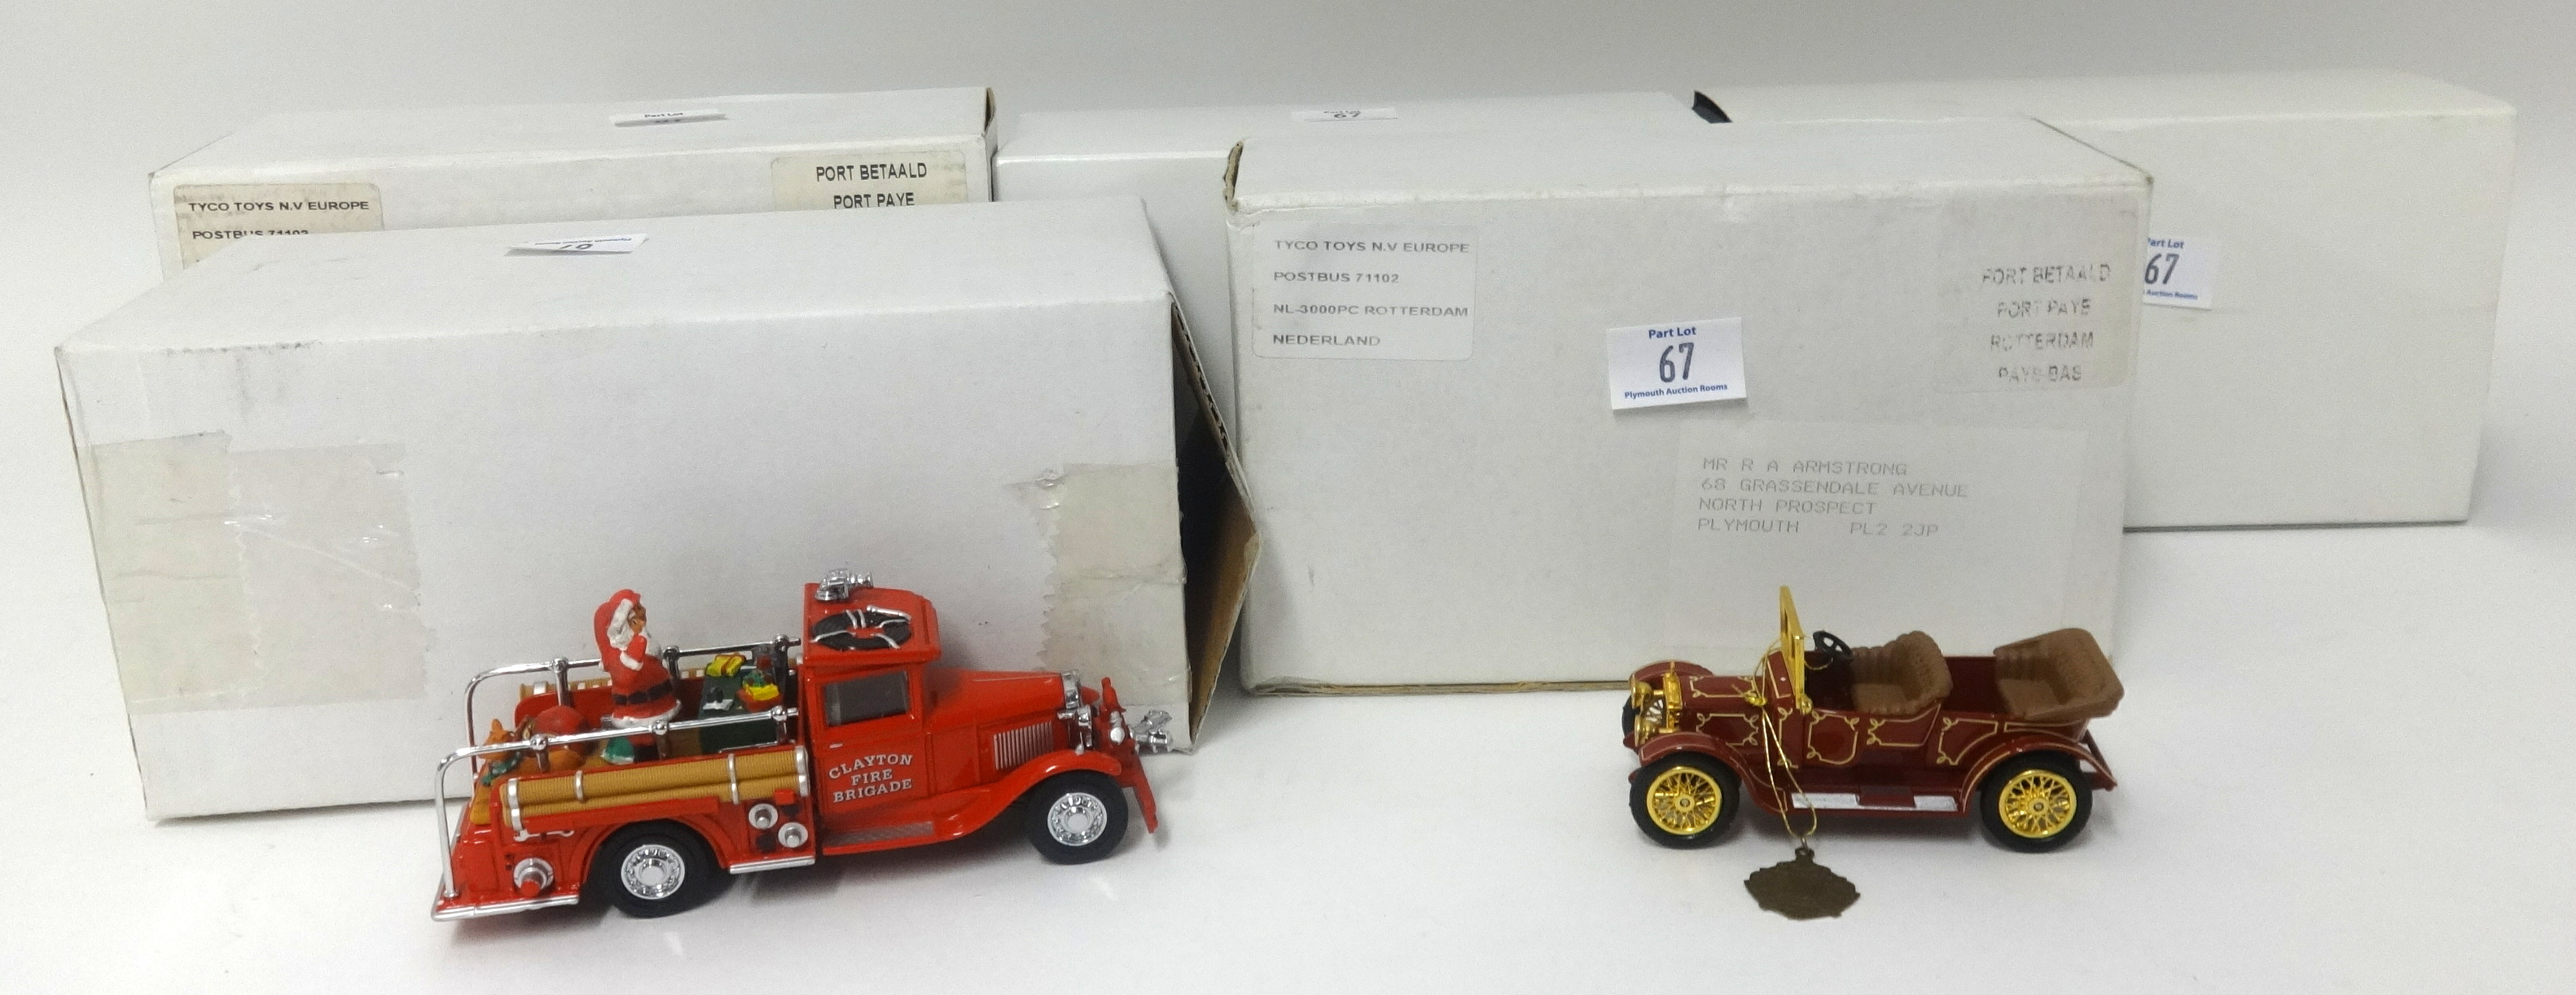 Lot 067 - A collection of Matchbox Models of Yesteryear models including the 40th anniversary of a 1911